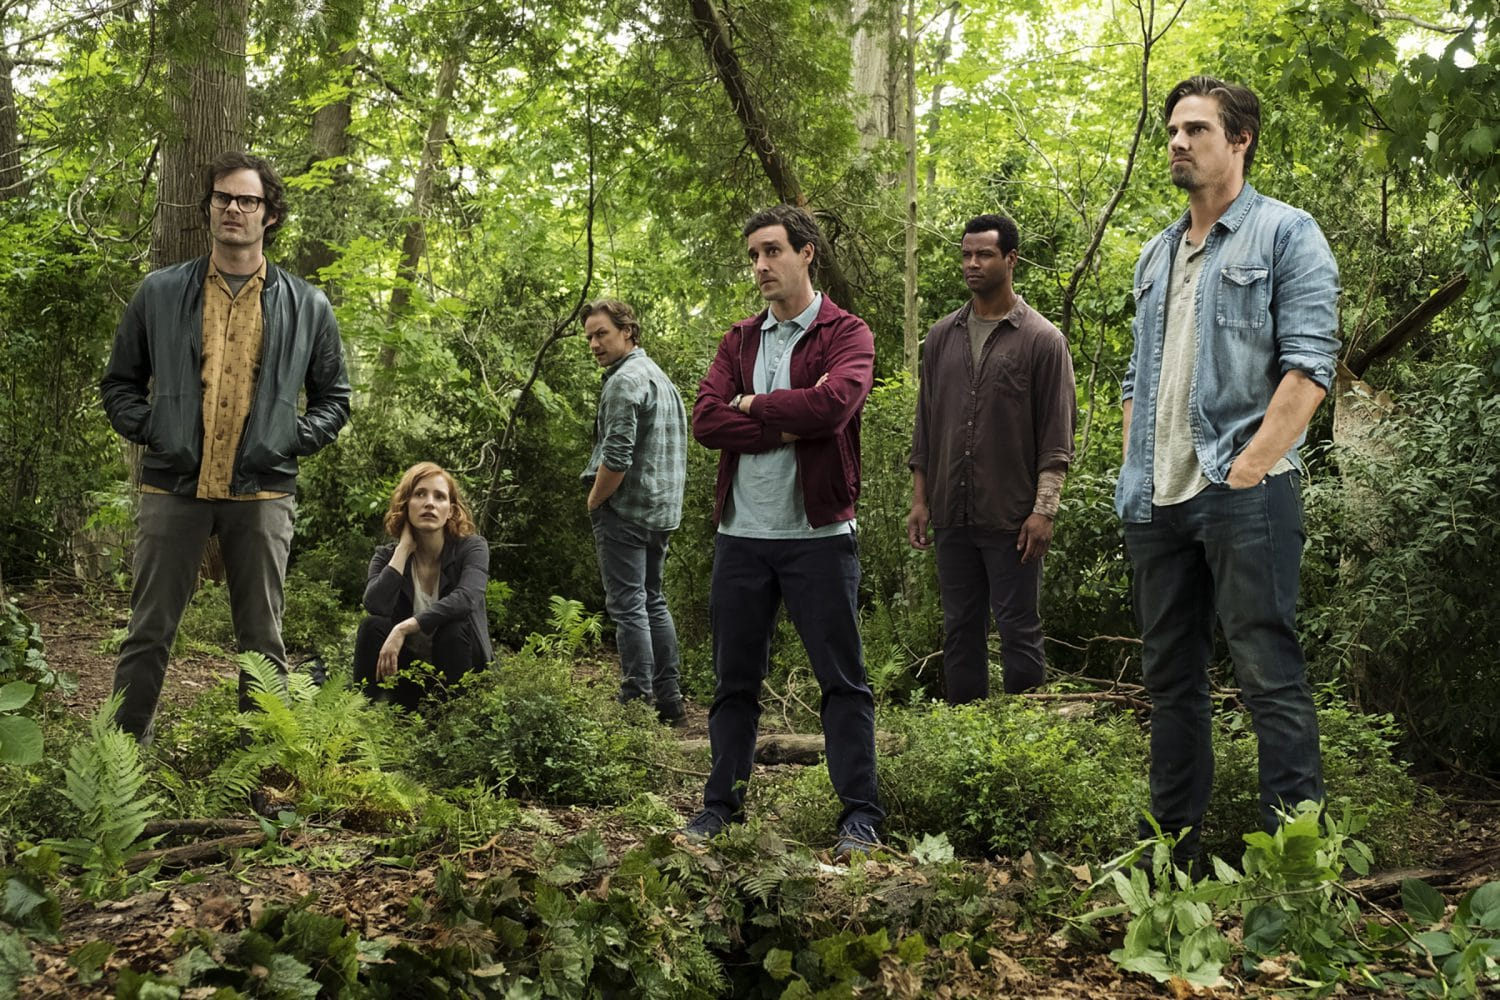 """(L-r) BILL HADER as Richie Tozier, JESSICA CHASTAIN as Beverly Marsh, JAMES MCAVOY as Bill Denbrough, JAMES RANSONE as Eddie Kaspbrak, ISAIAH MUSTAFA as Mike Hanlon, and JAY RYAN as Ben Hascomb in New Line Cinema's horror thriller """"IT CHAPTER TWO,"""" a Warner Bros. Pictures release. Photo by Brooke Palmer"""